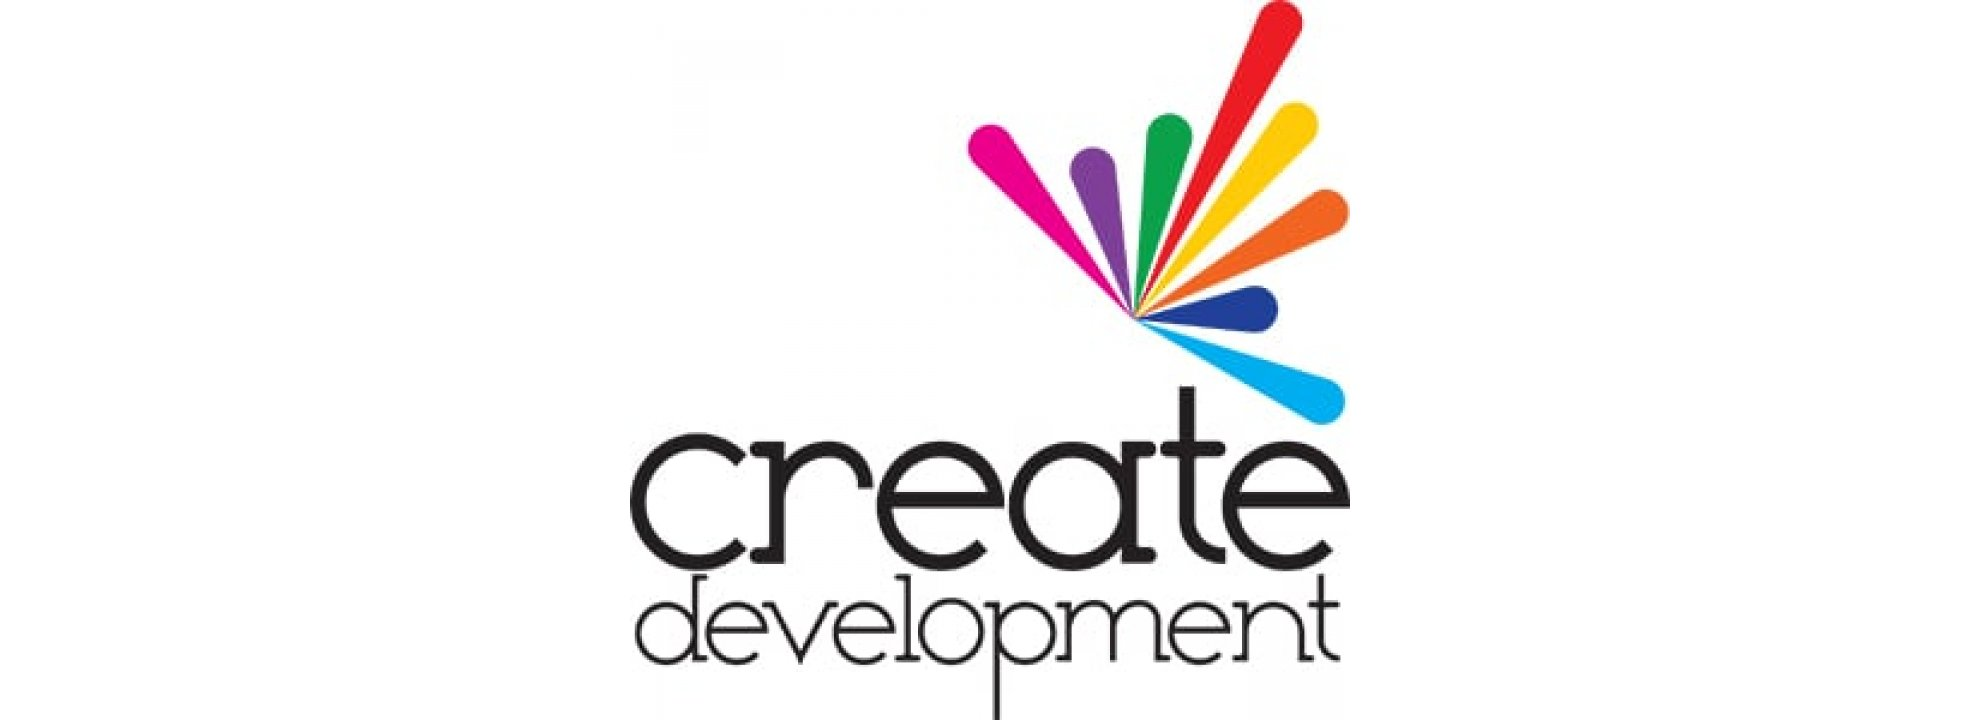 Tutor & Client Manager, Create Development Banner